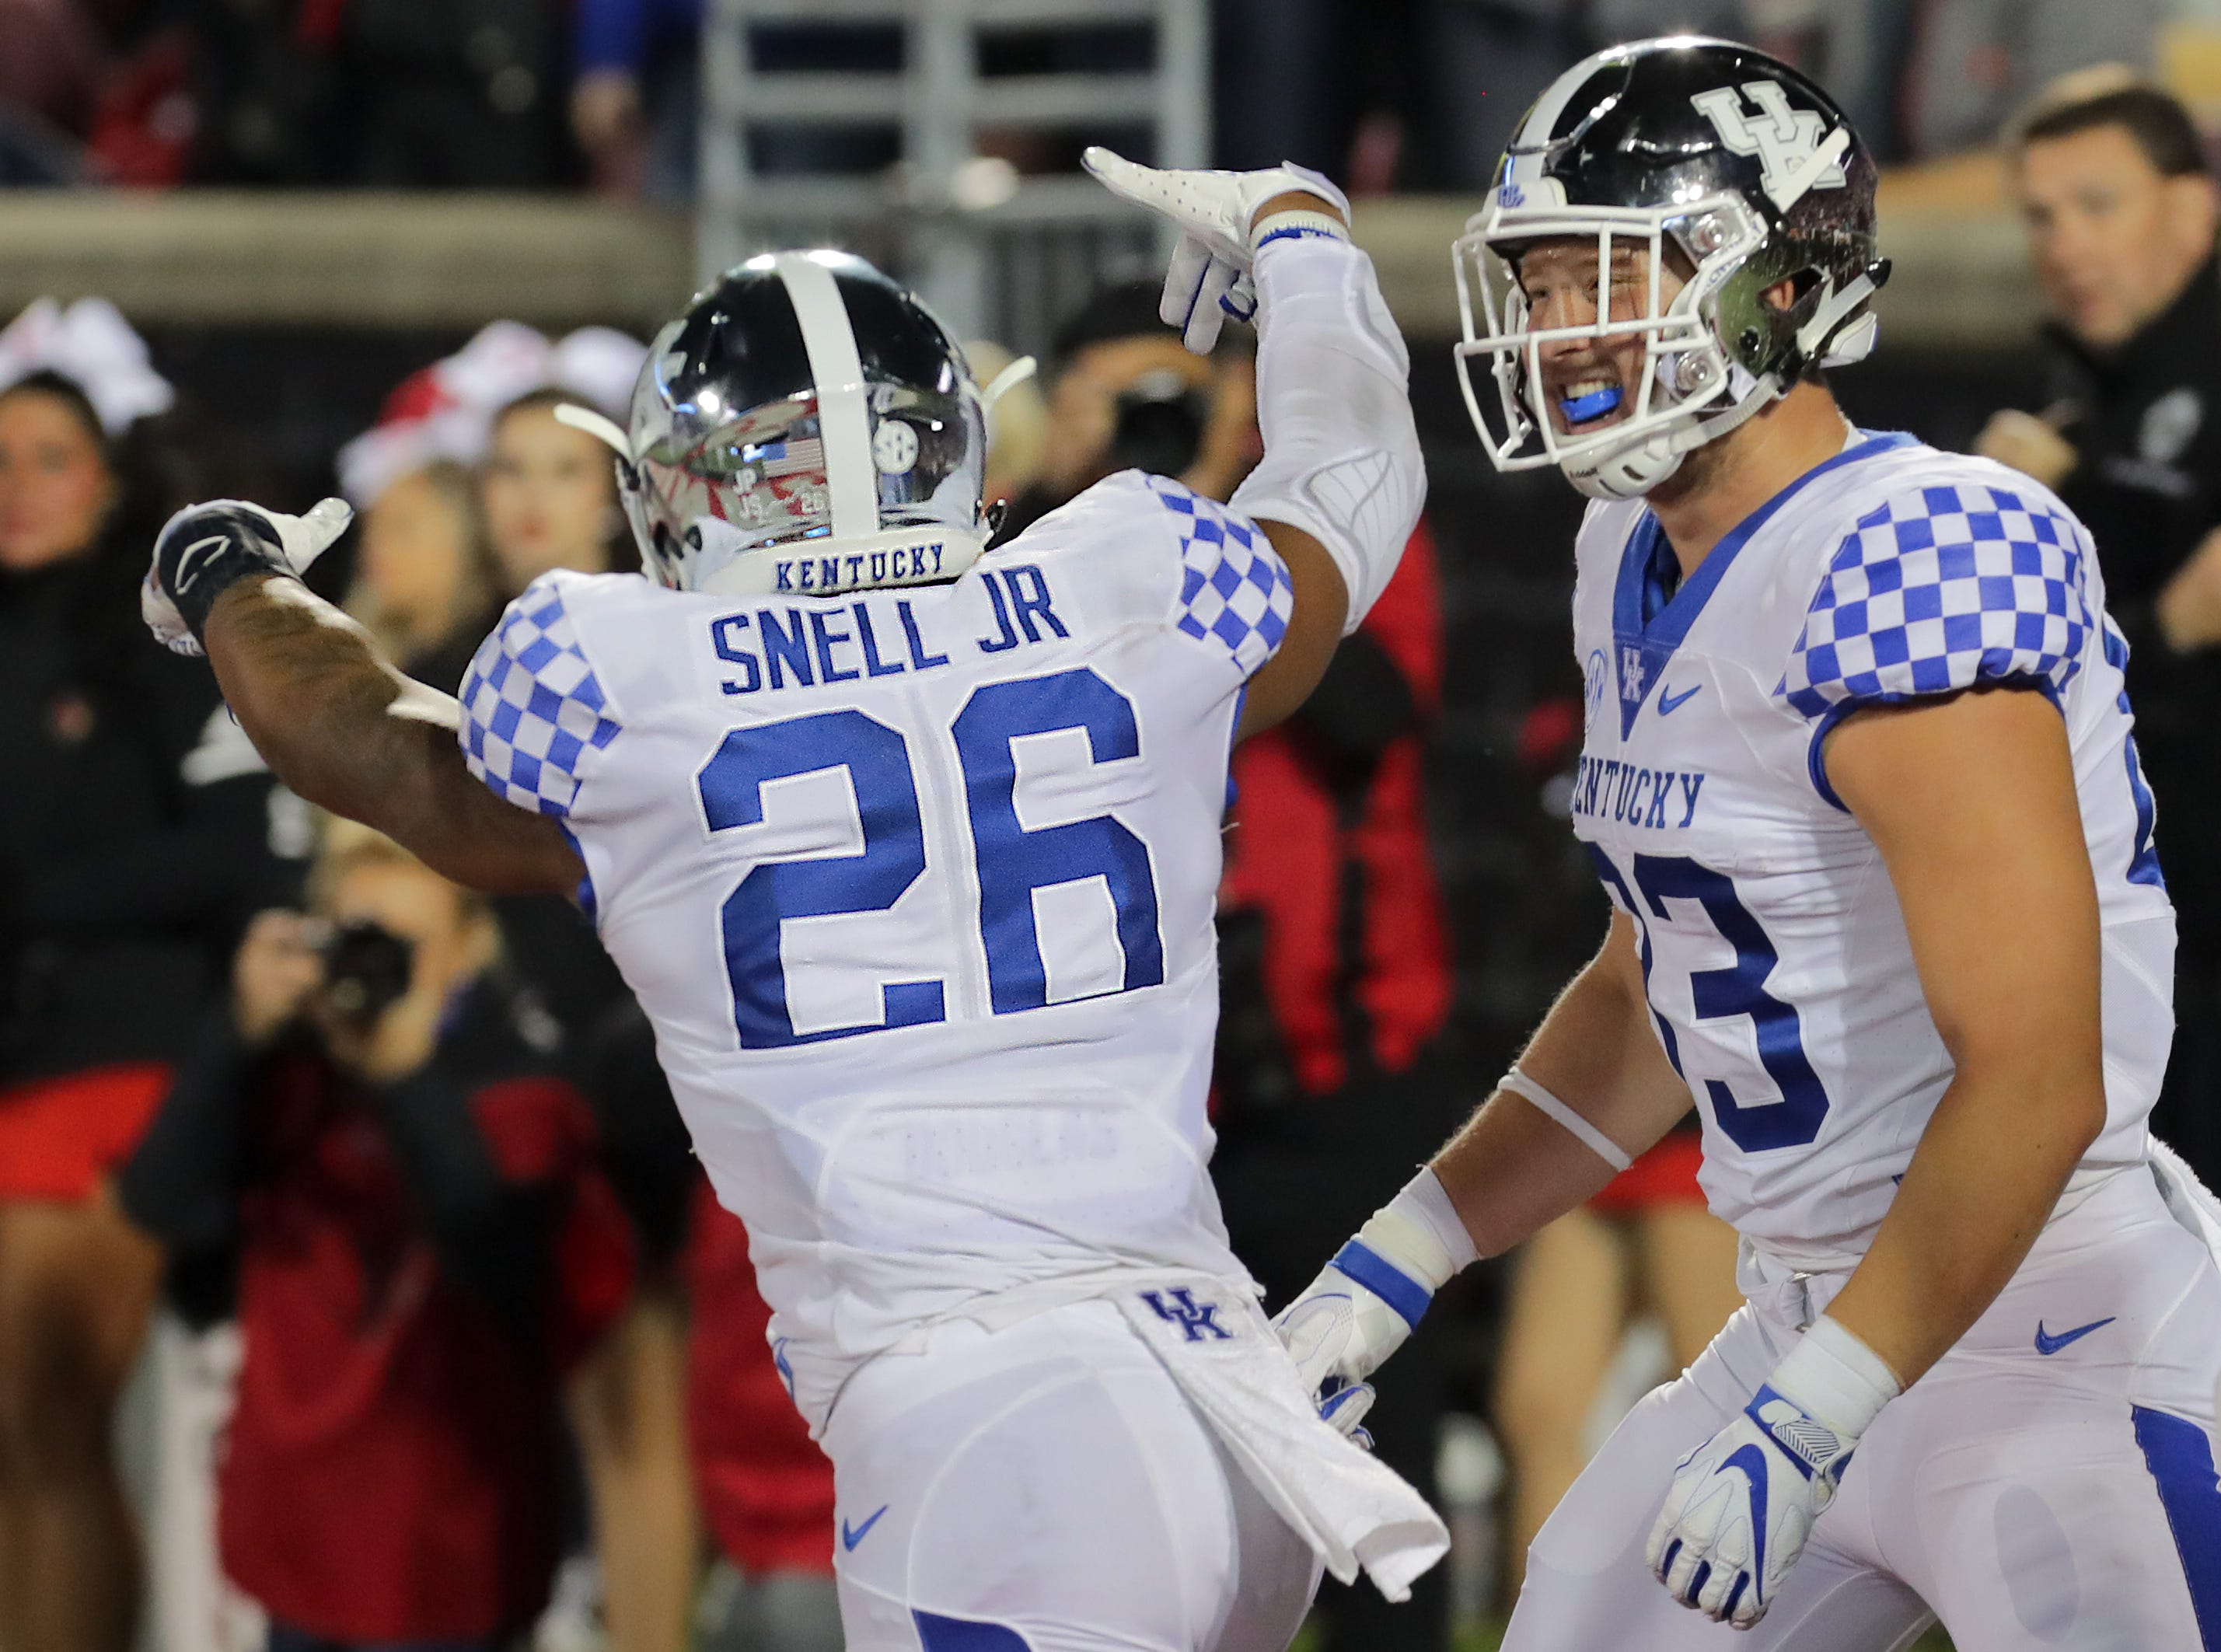 Kentucky's Benny Snell Jr. signals the upside down Ls after scoring another touchdown against Louisville. 